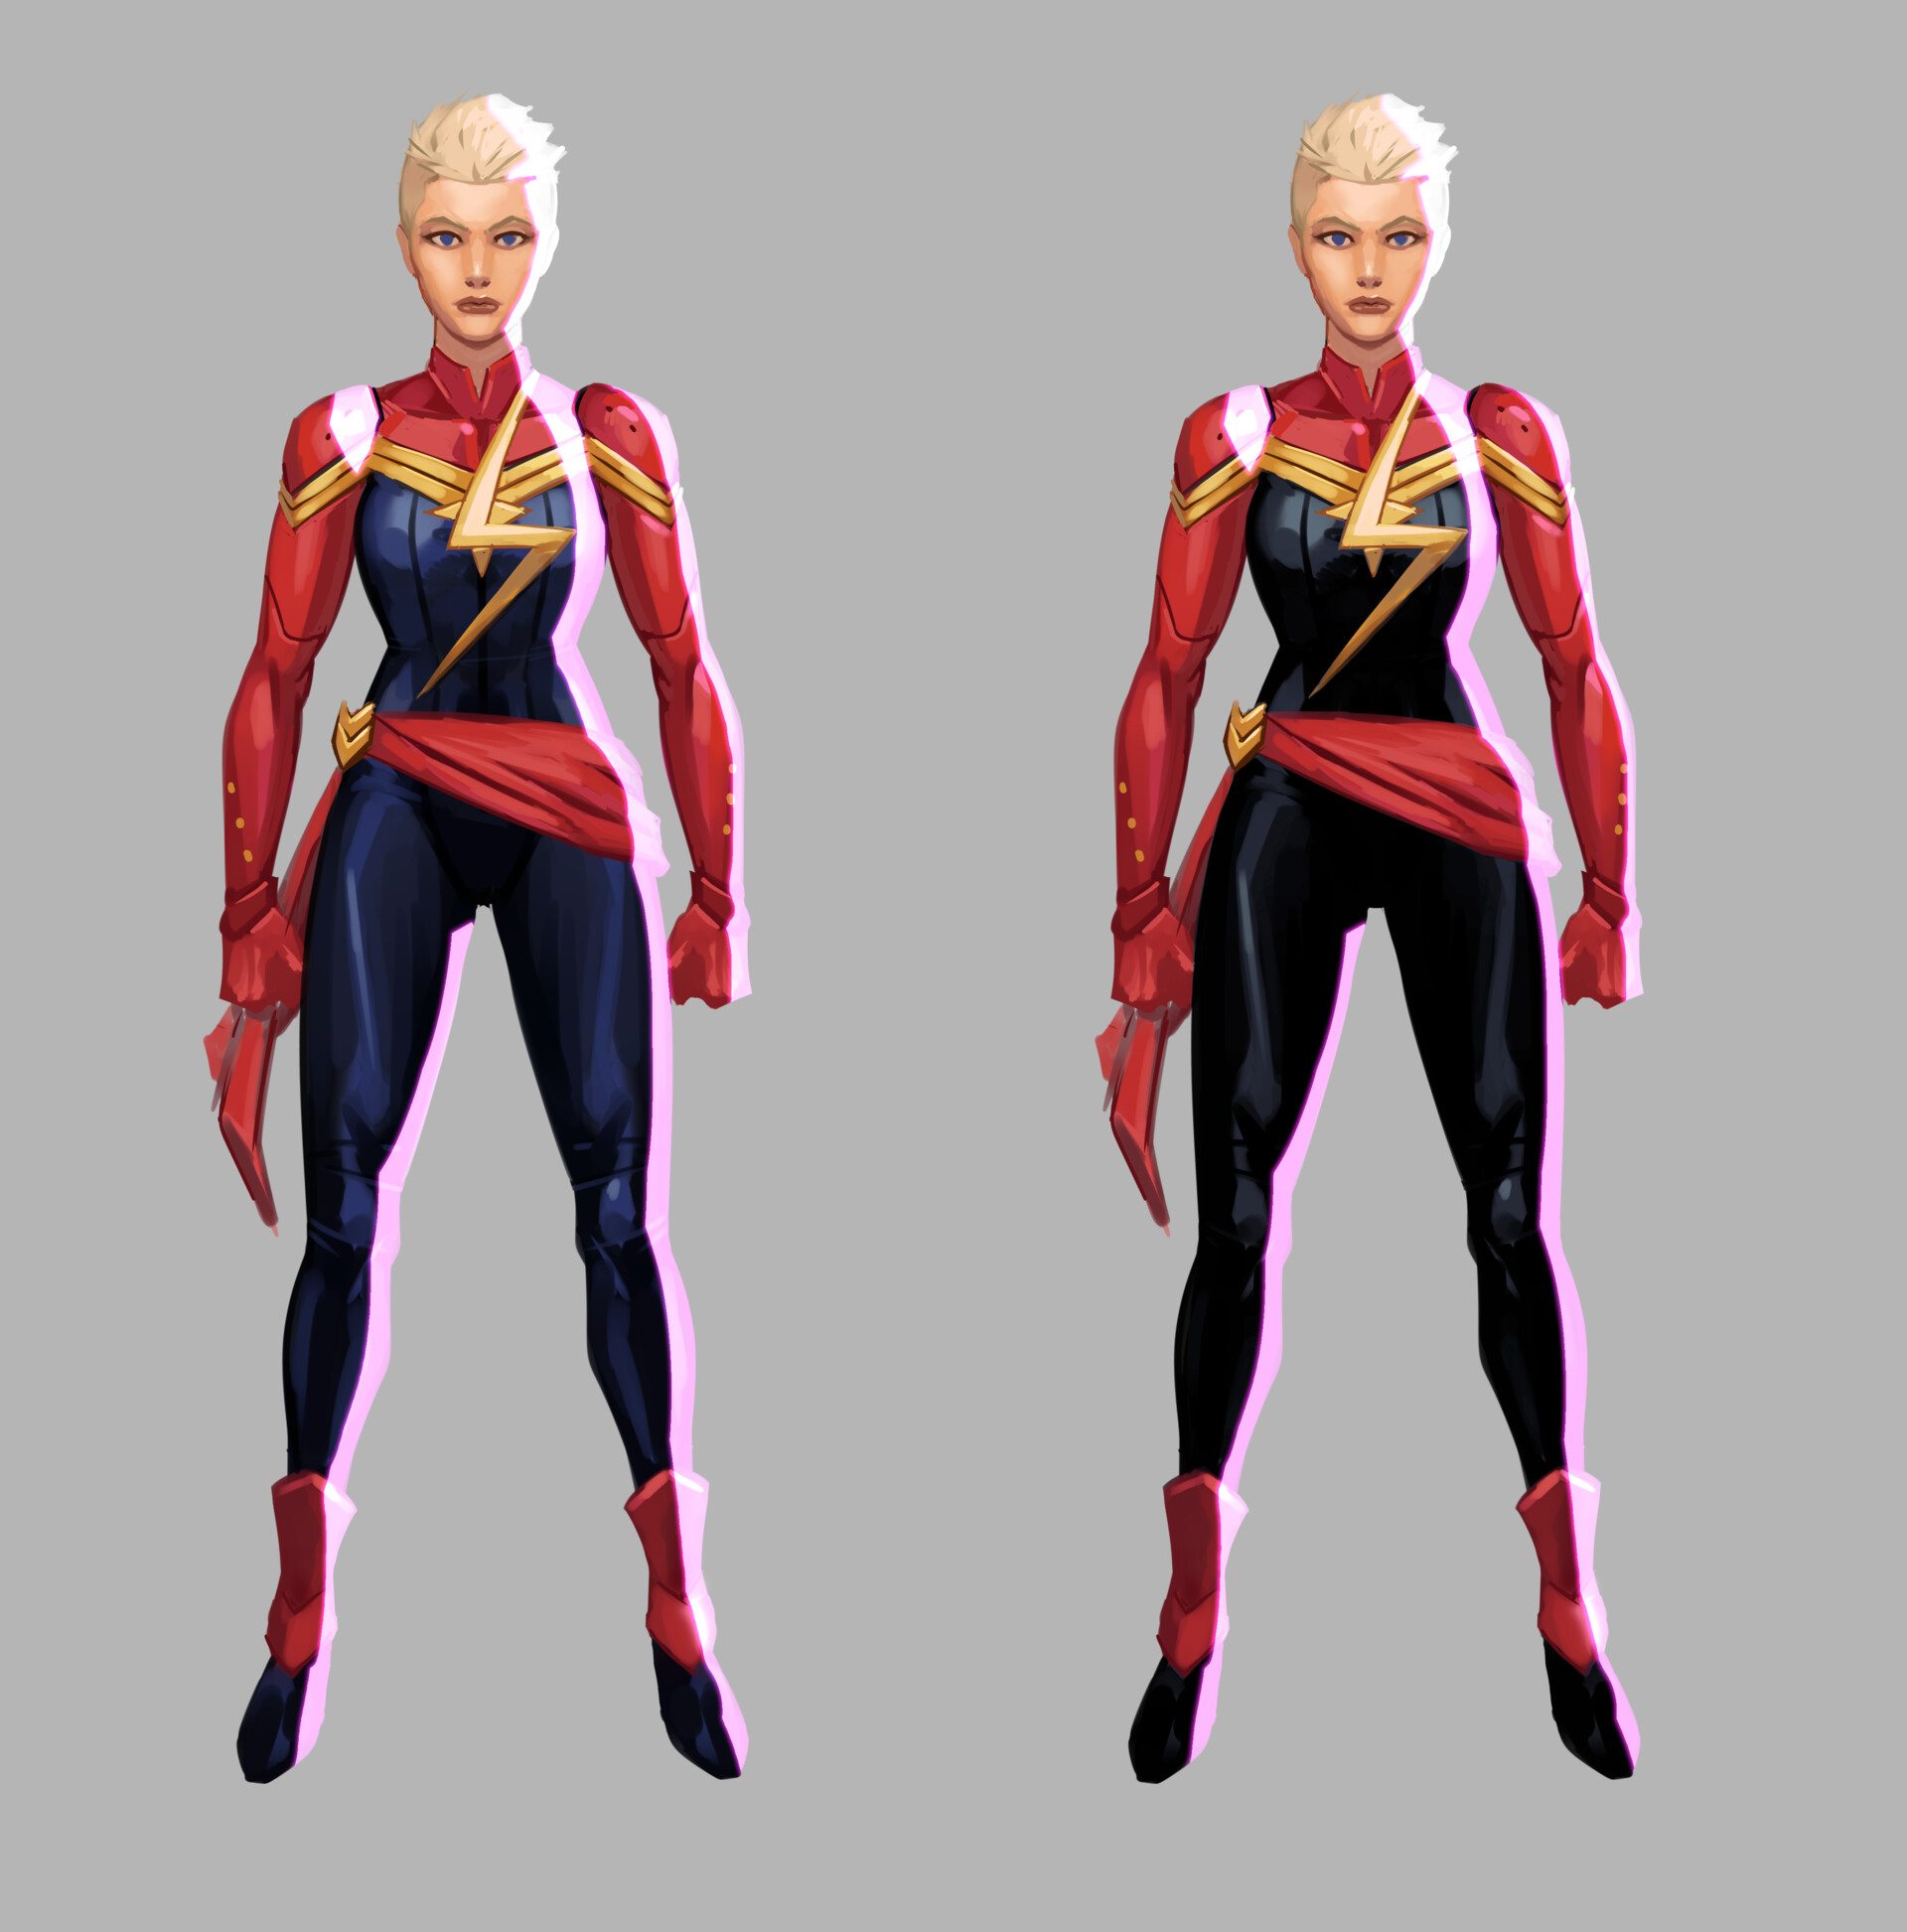 Artstation Captain Marvel 01 Christopher Wilson Marvel is the name of many fictional superheroes appearing in comic books published by marvel comics. captain marvel 01 christopher wilson